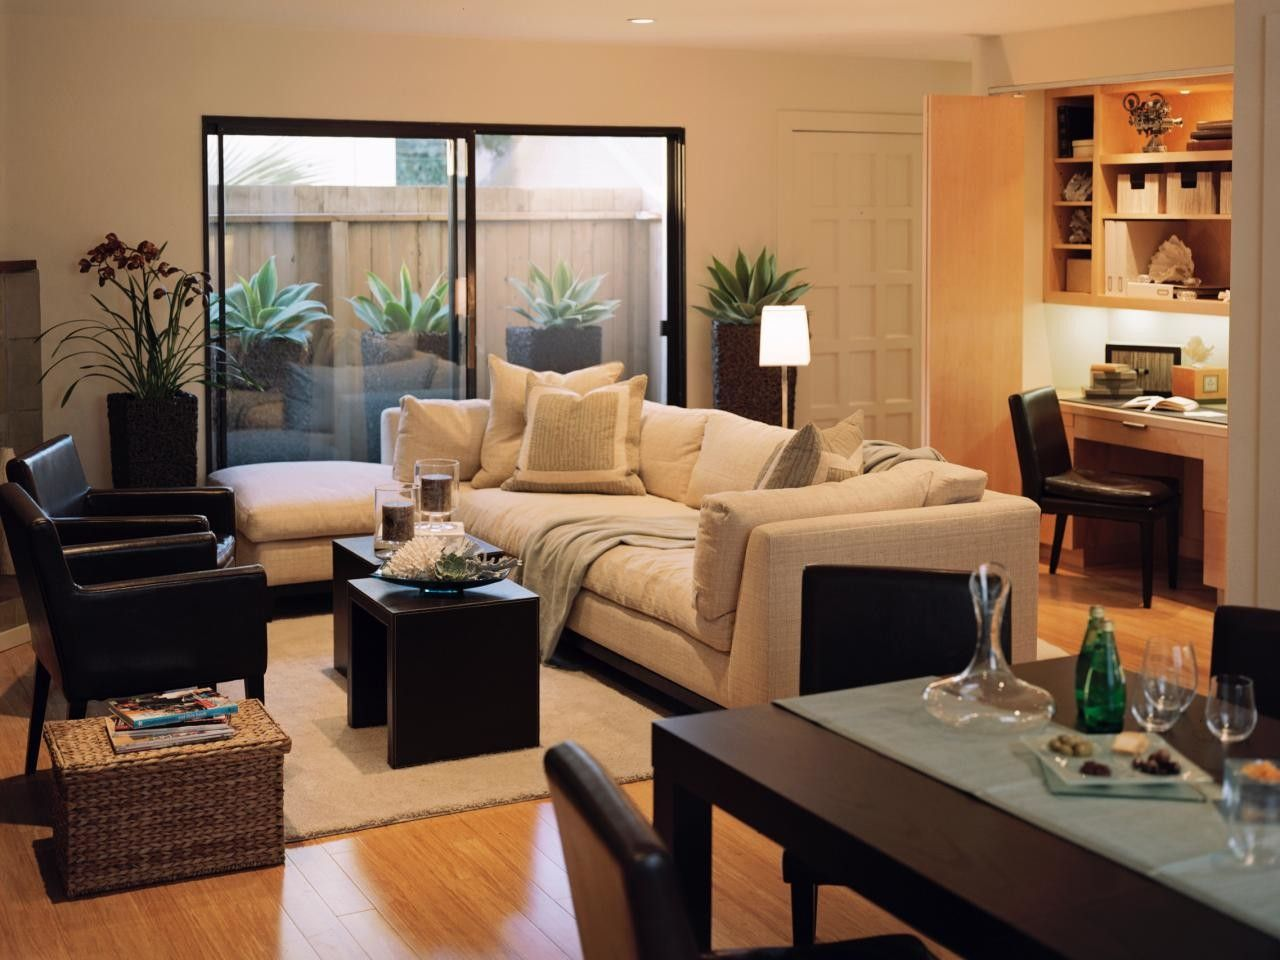 Excellent Photo Of Townhouse Decorating Ideas Modern Inte